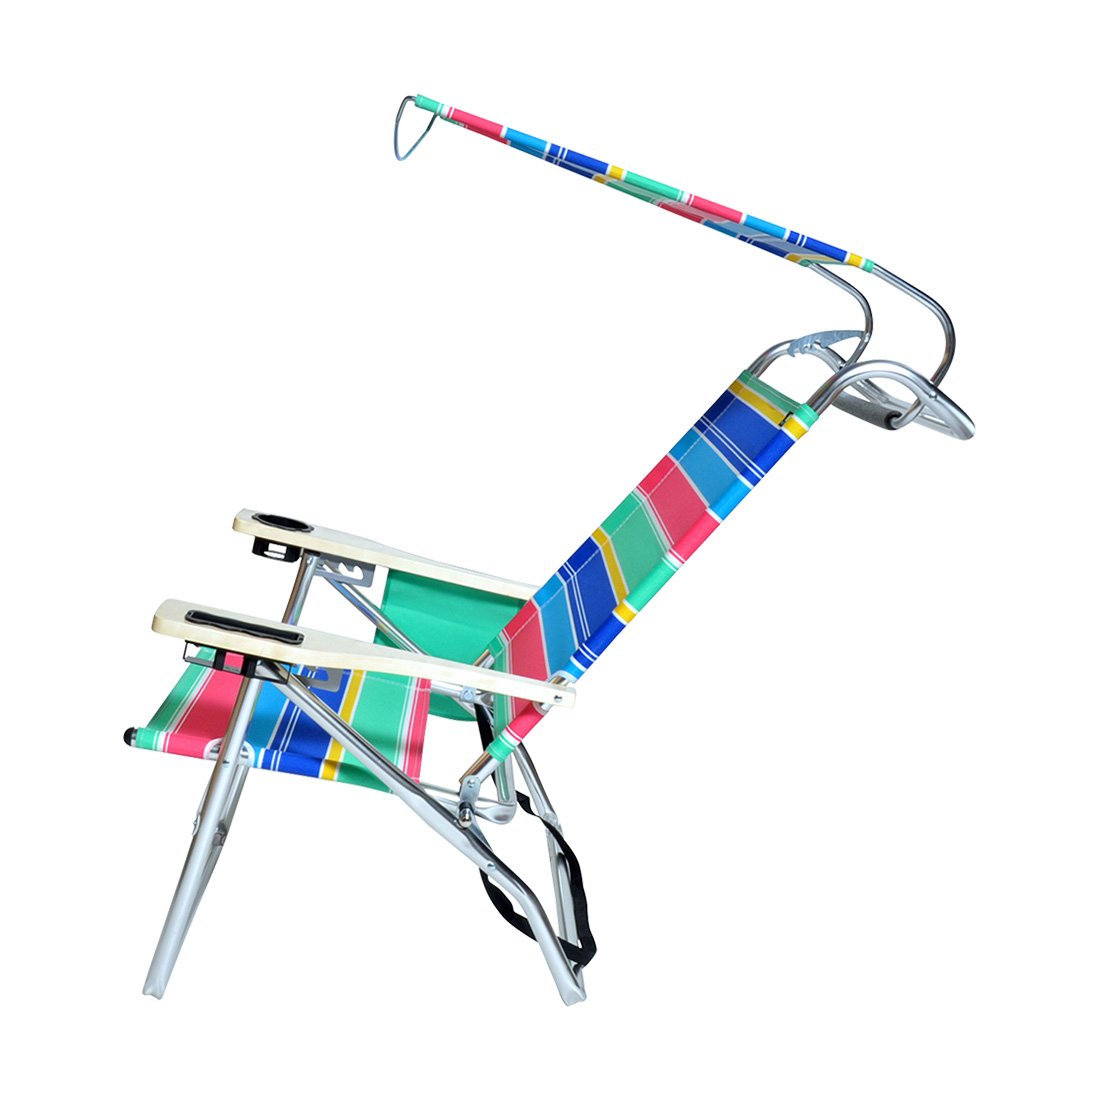 hi boy beach chair with canopy wedding sashes deluxe 4 position aluminum w/ & storage pouch | ebay